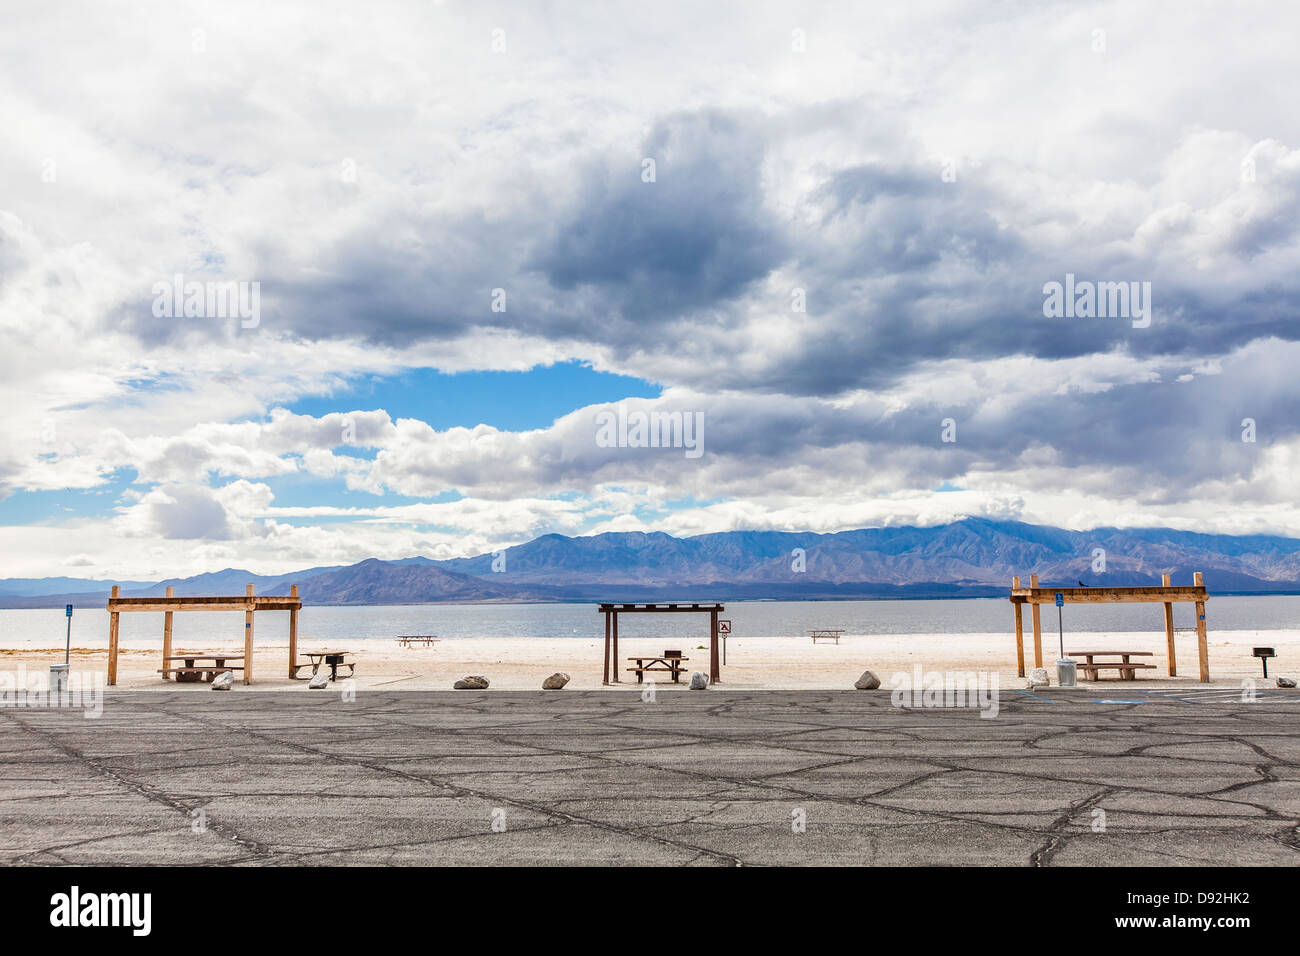 Picnic areas with overhead shelter from the sun and picnic benches at the Salton Sea Recreational Area located in - Stock Image